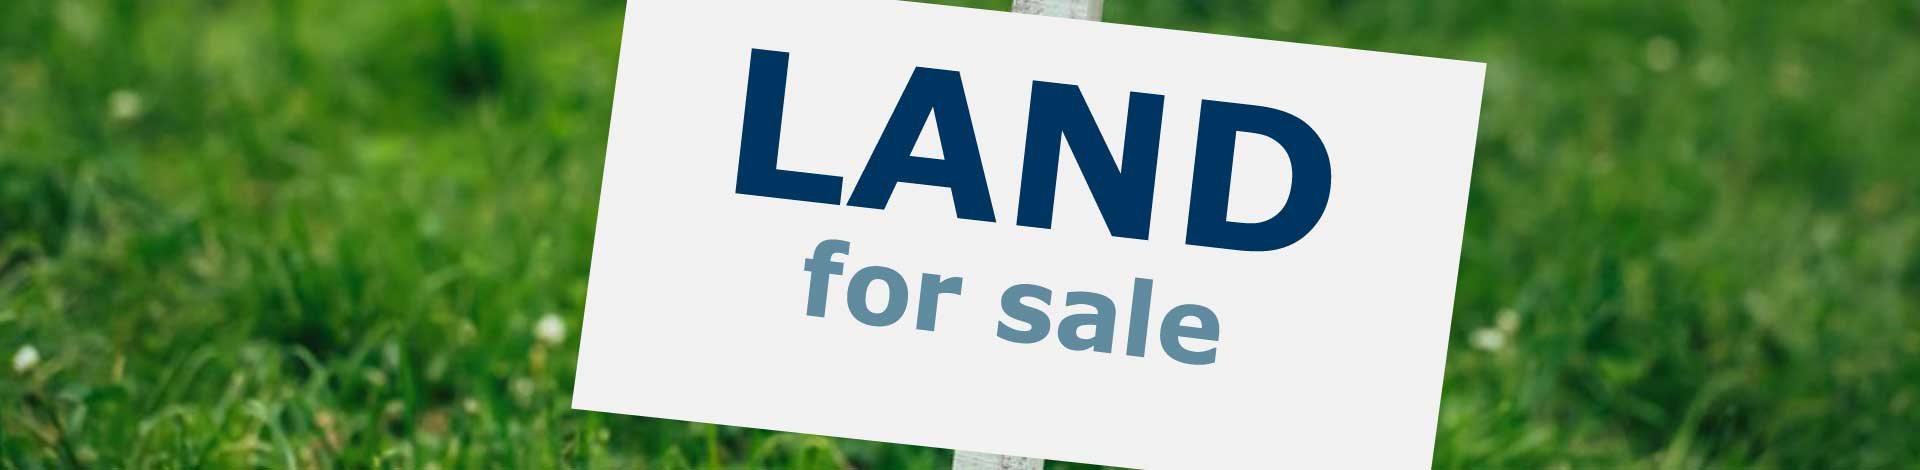 Vacant Land for Sale, to grow your Business or Build your Dream Home